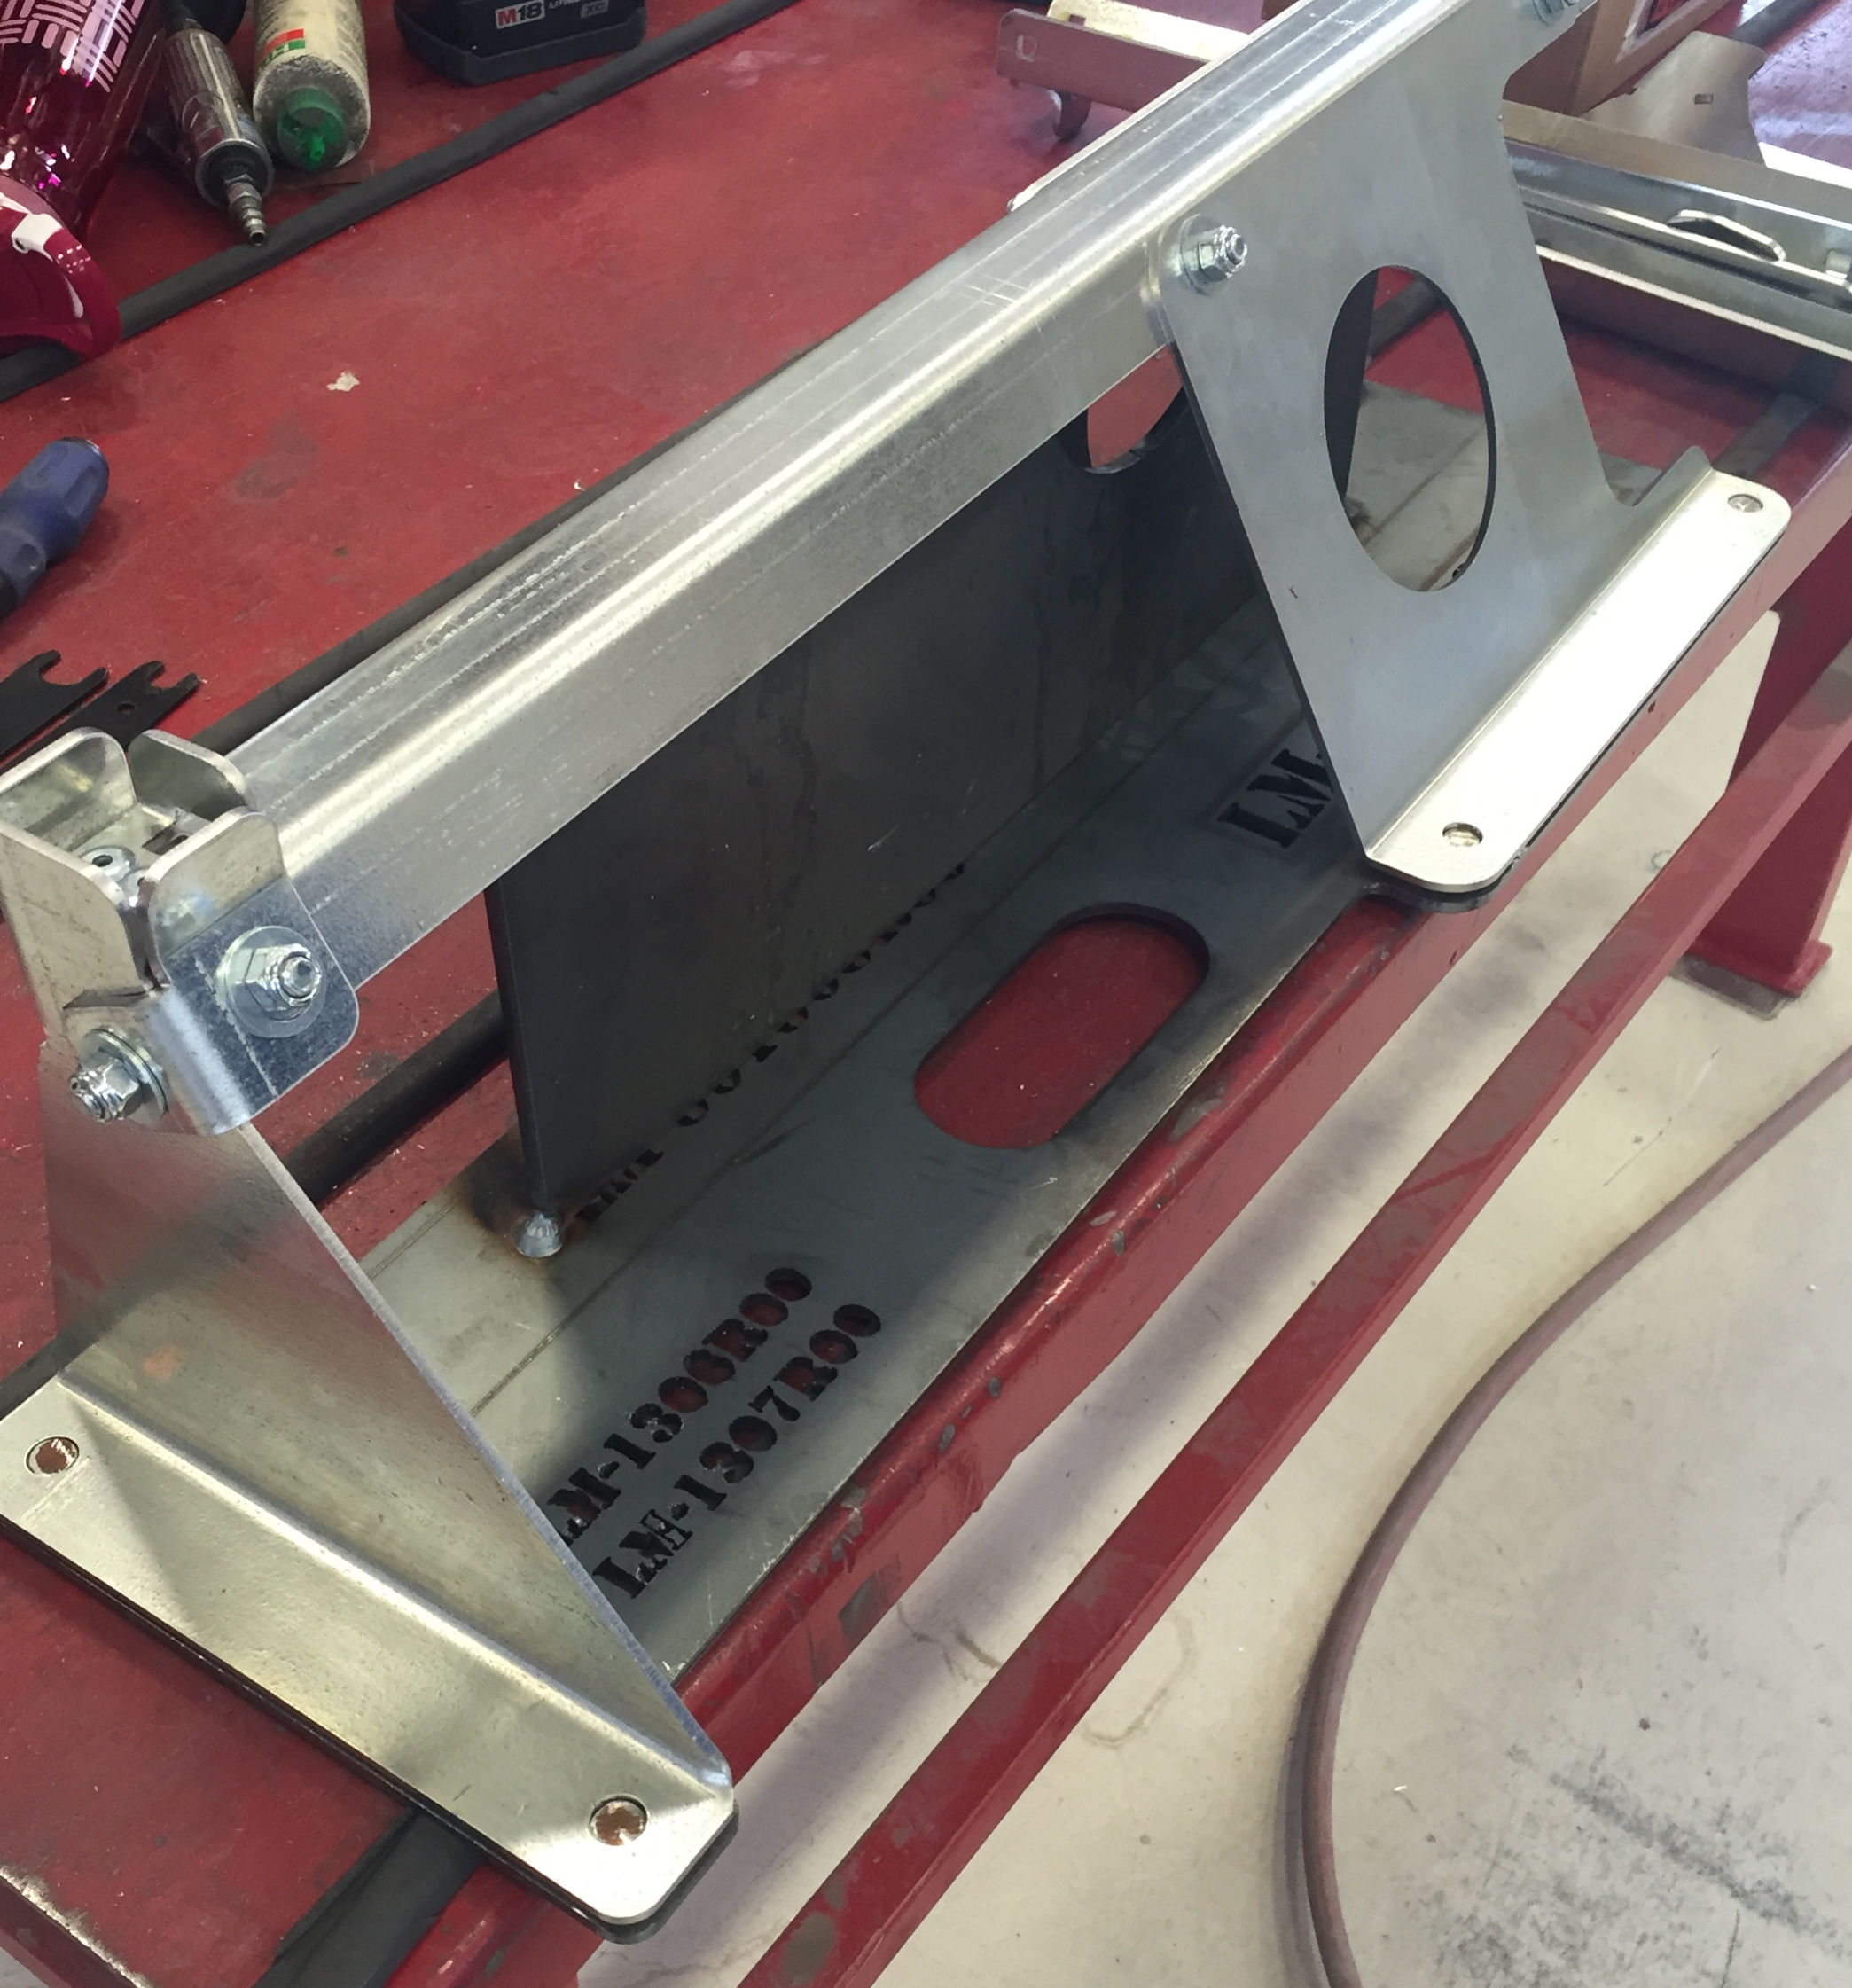 The galvanized steel sub-components are placed on the jig and bolted together.